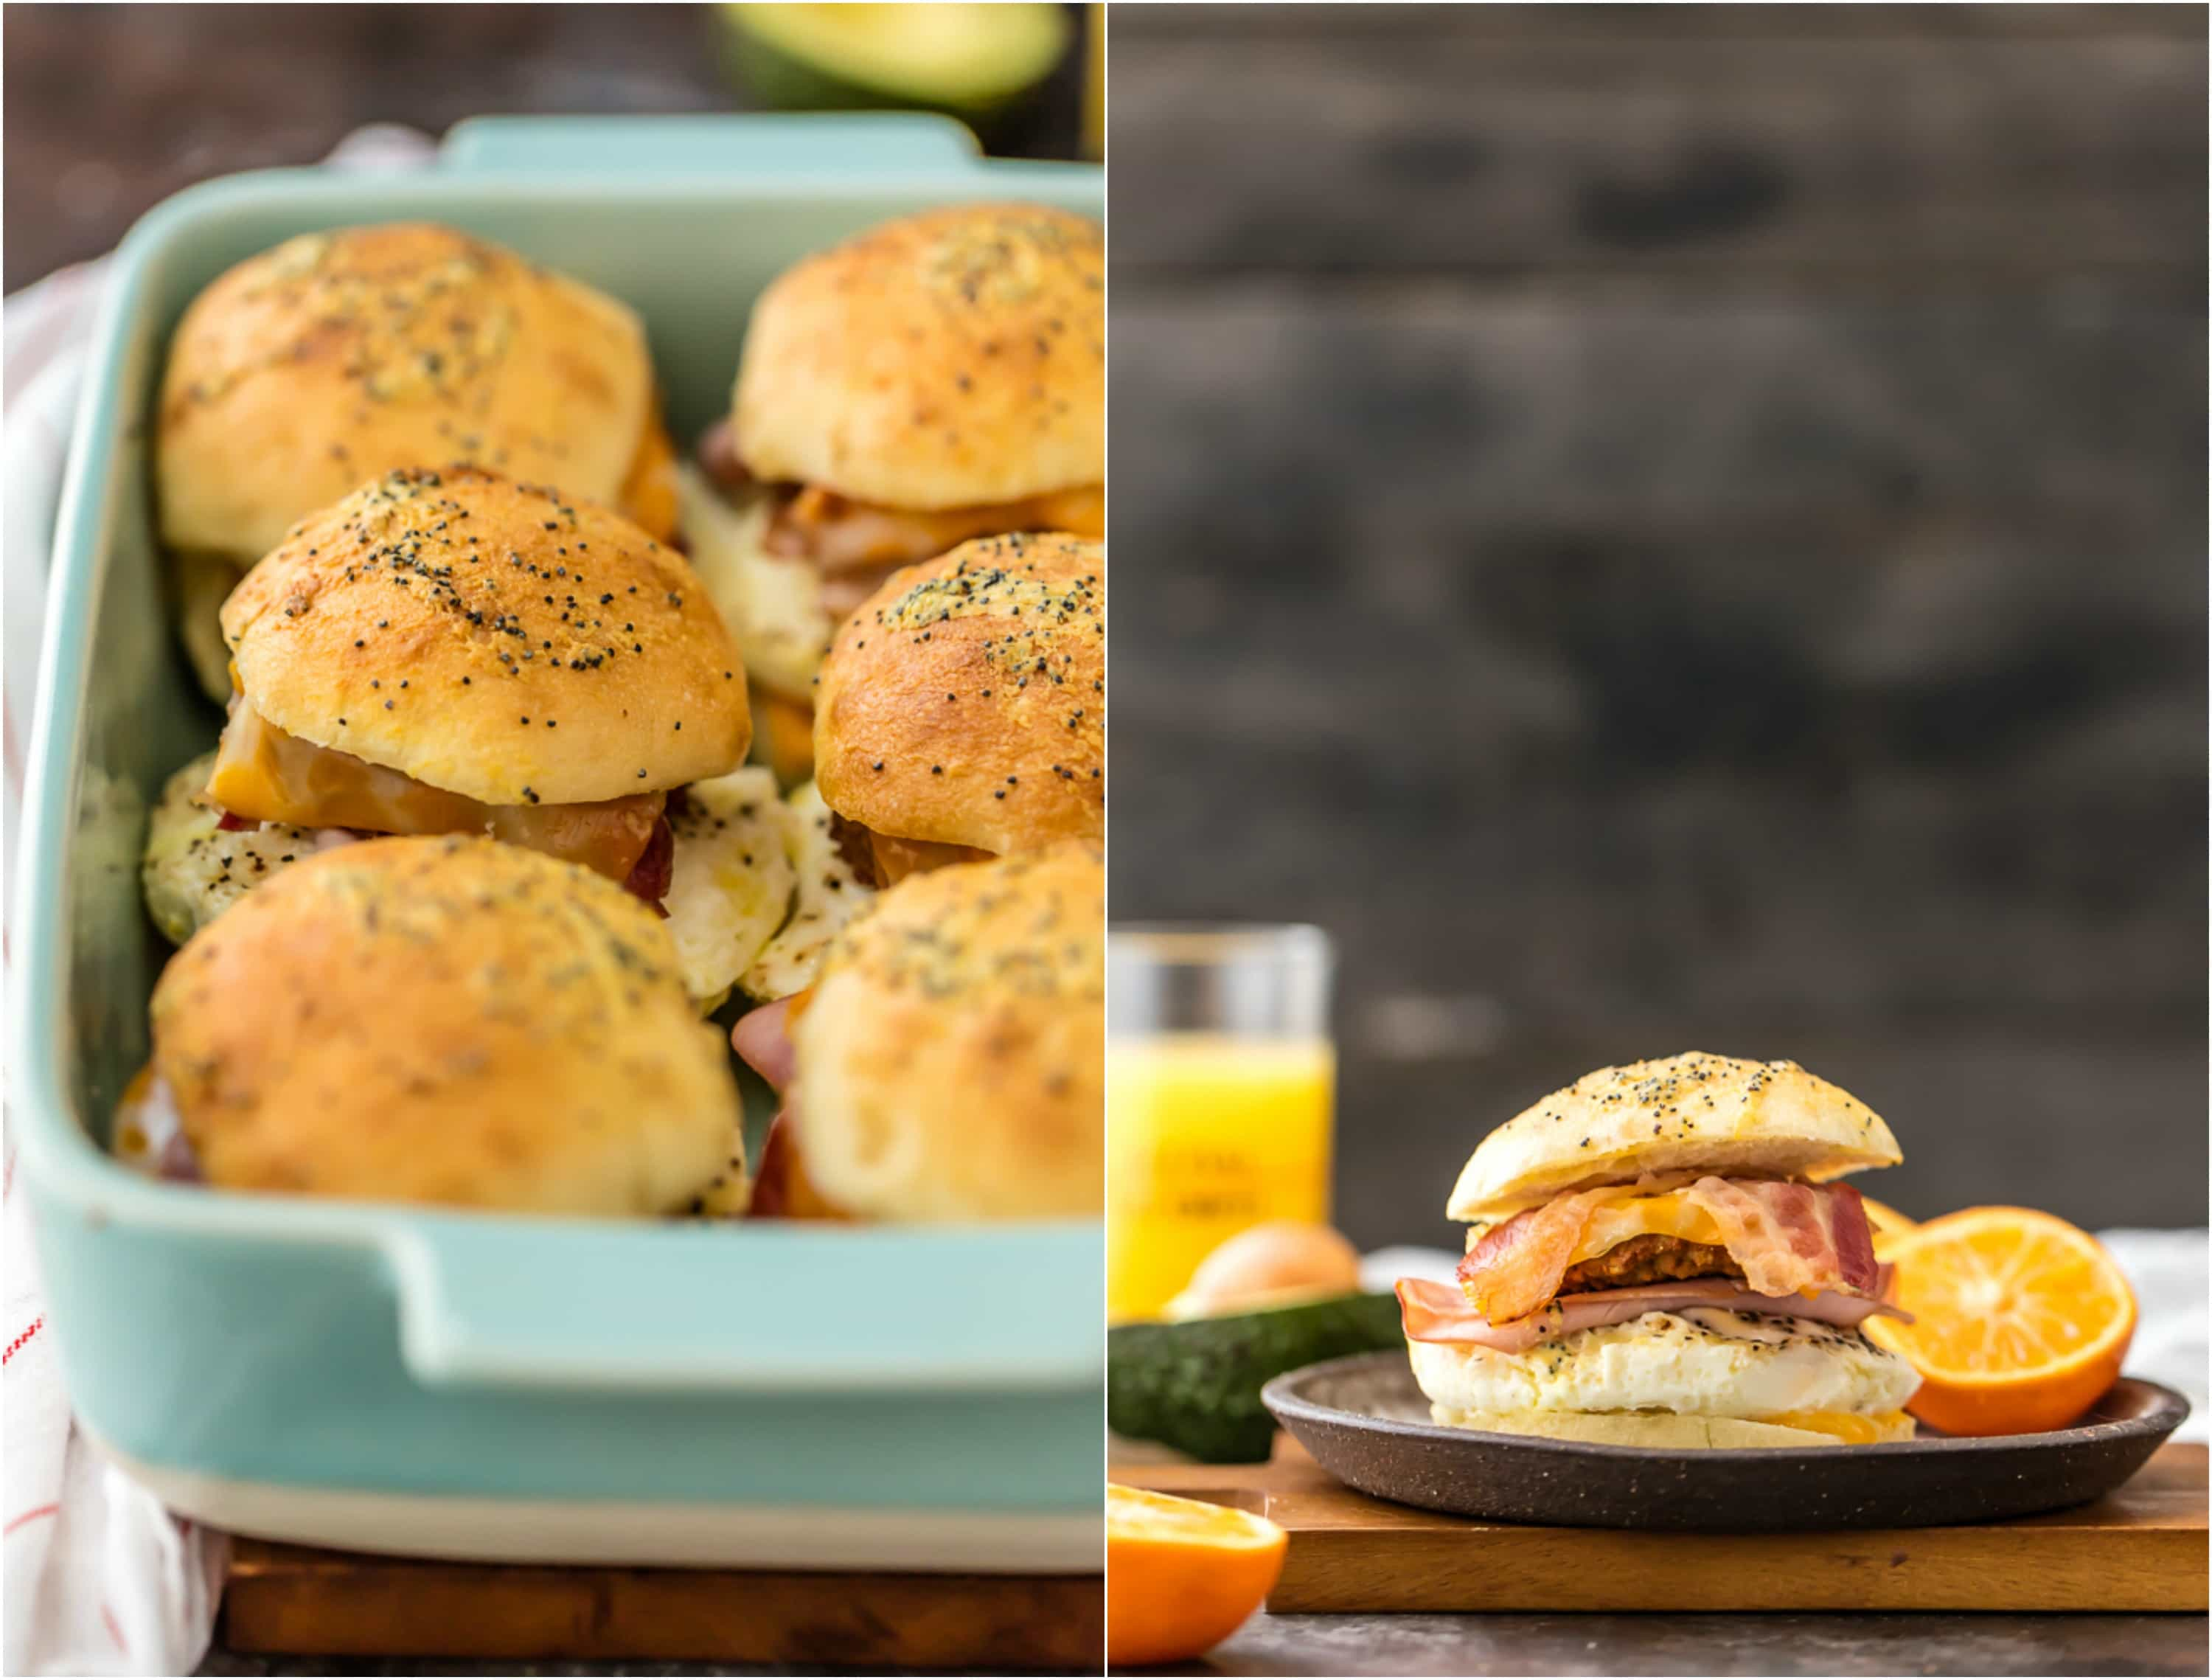 pan of ultimate baked breakfast sliders and one on plate